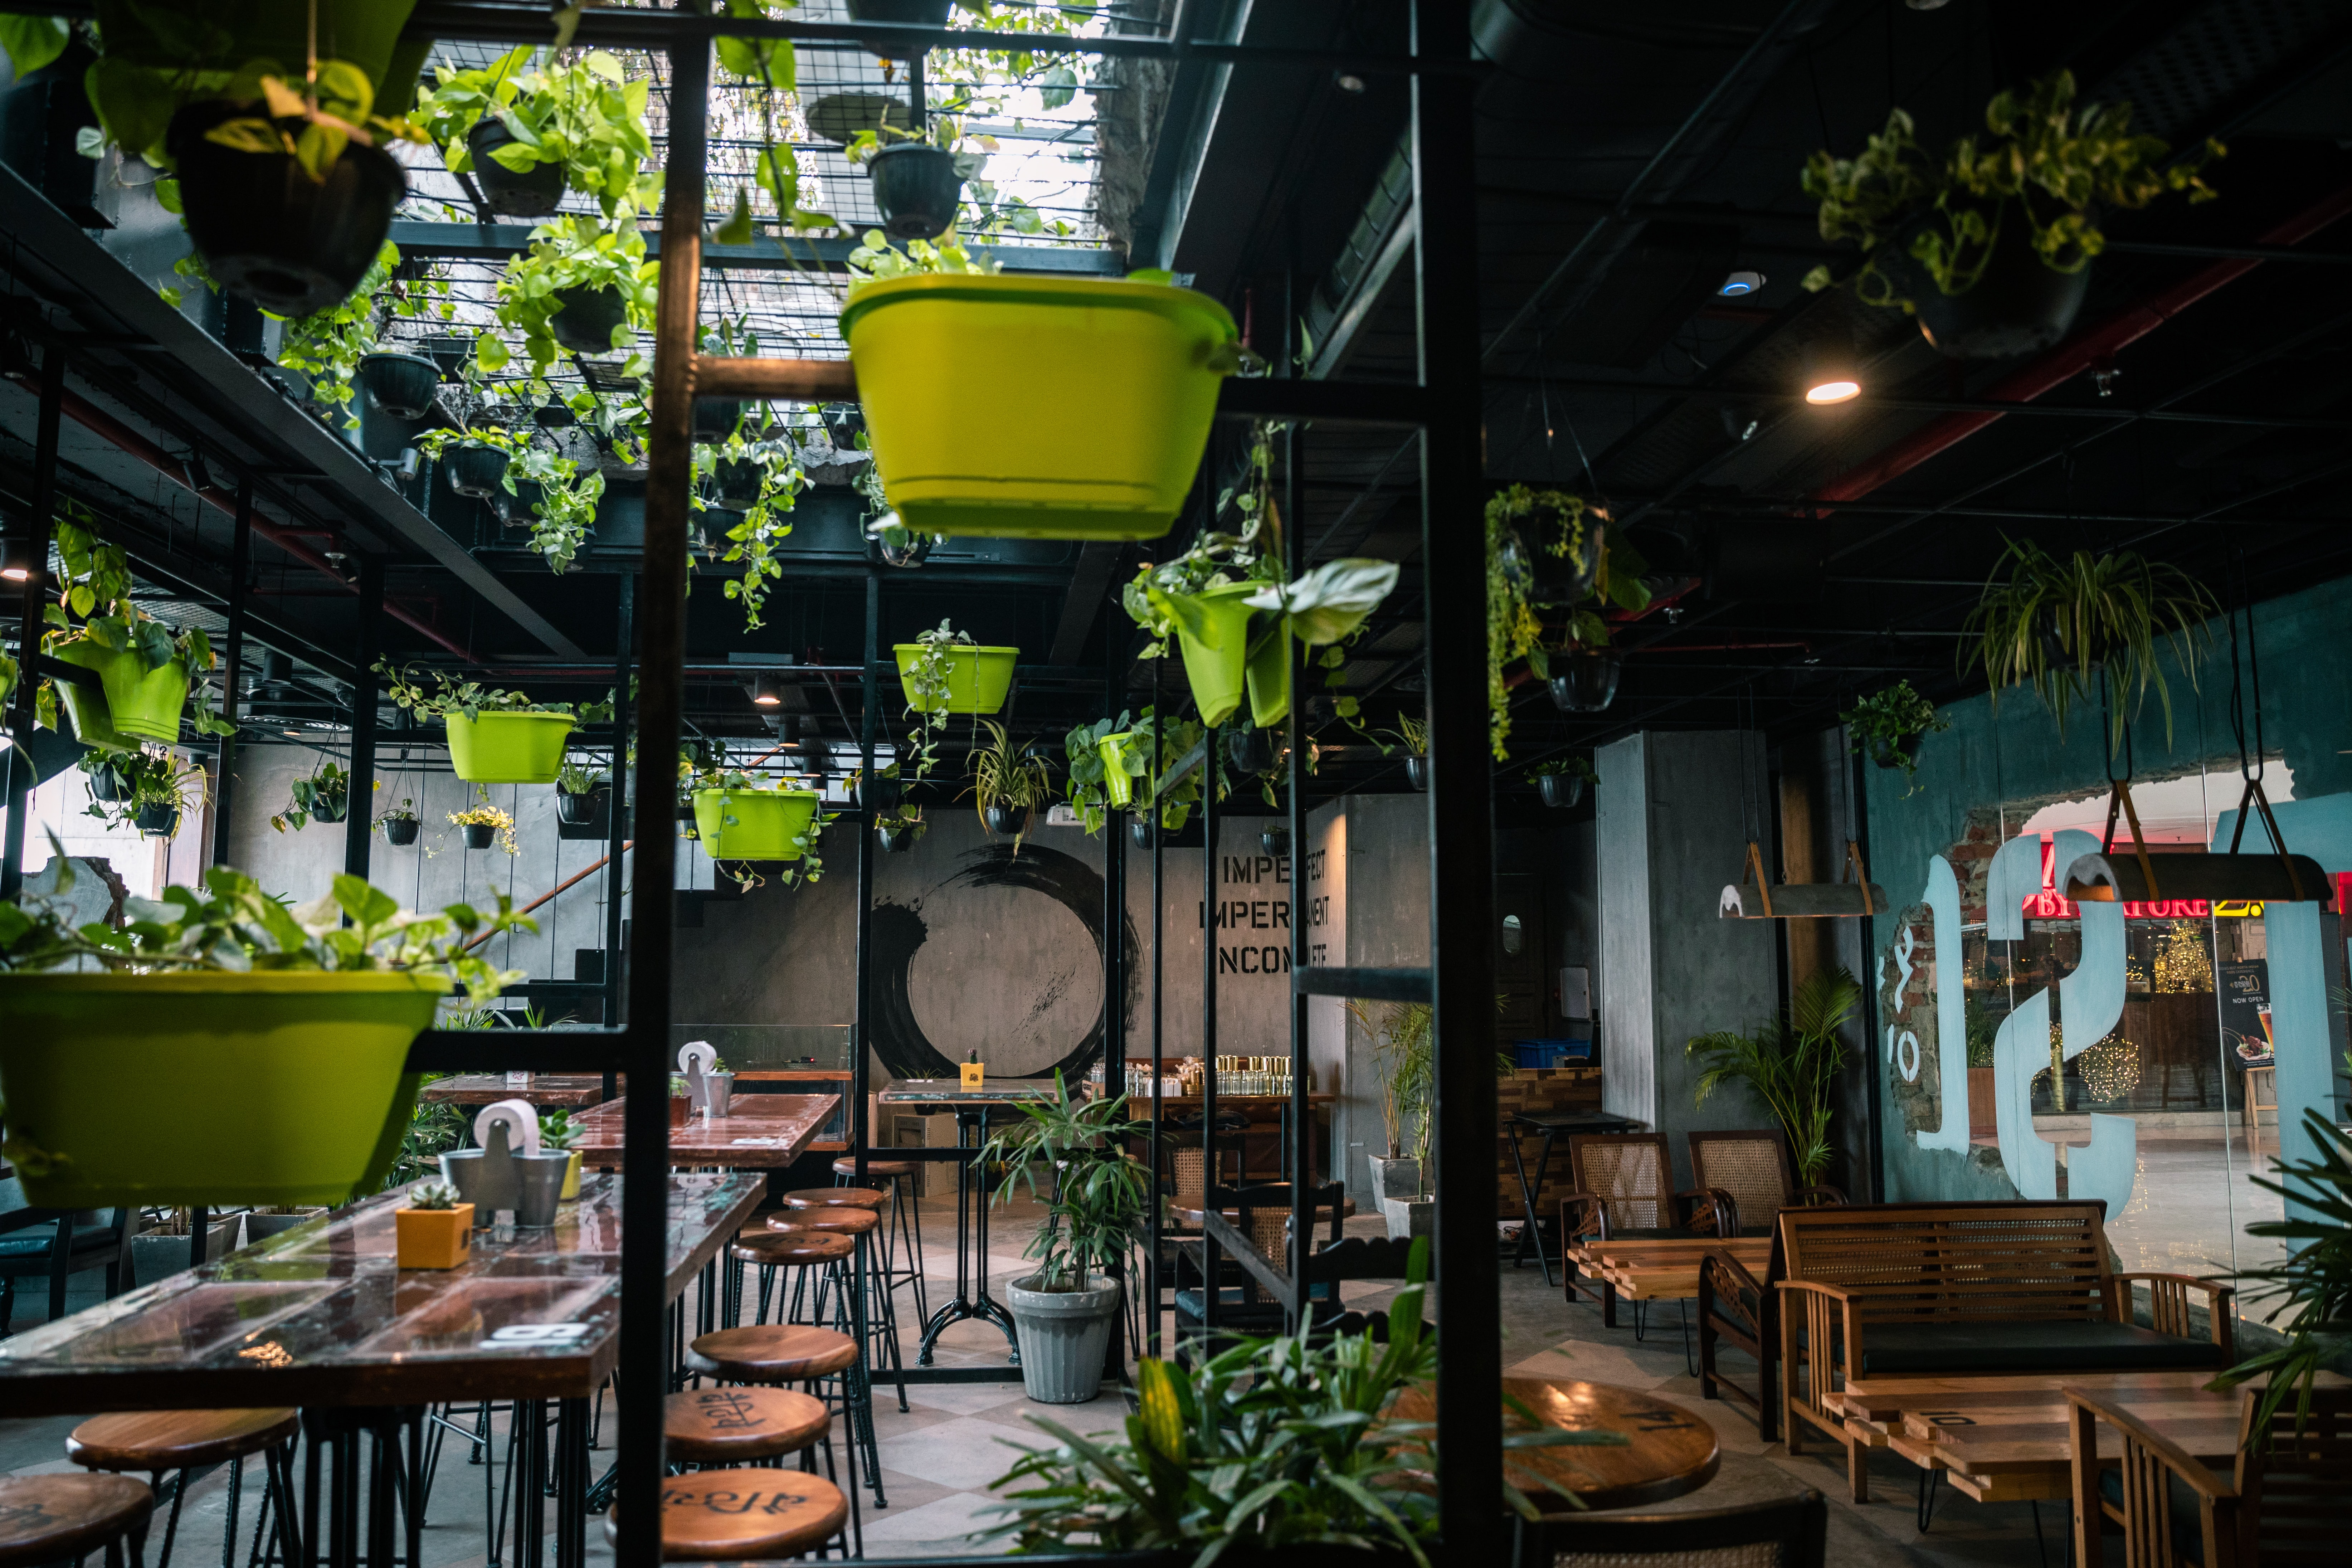 Flexible workspace with lots of wooden seating and plants